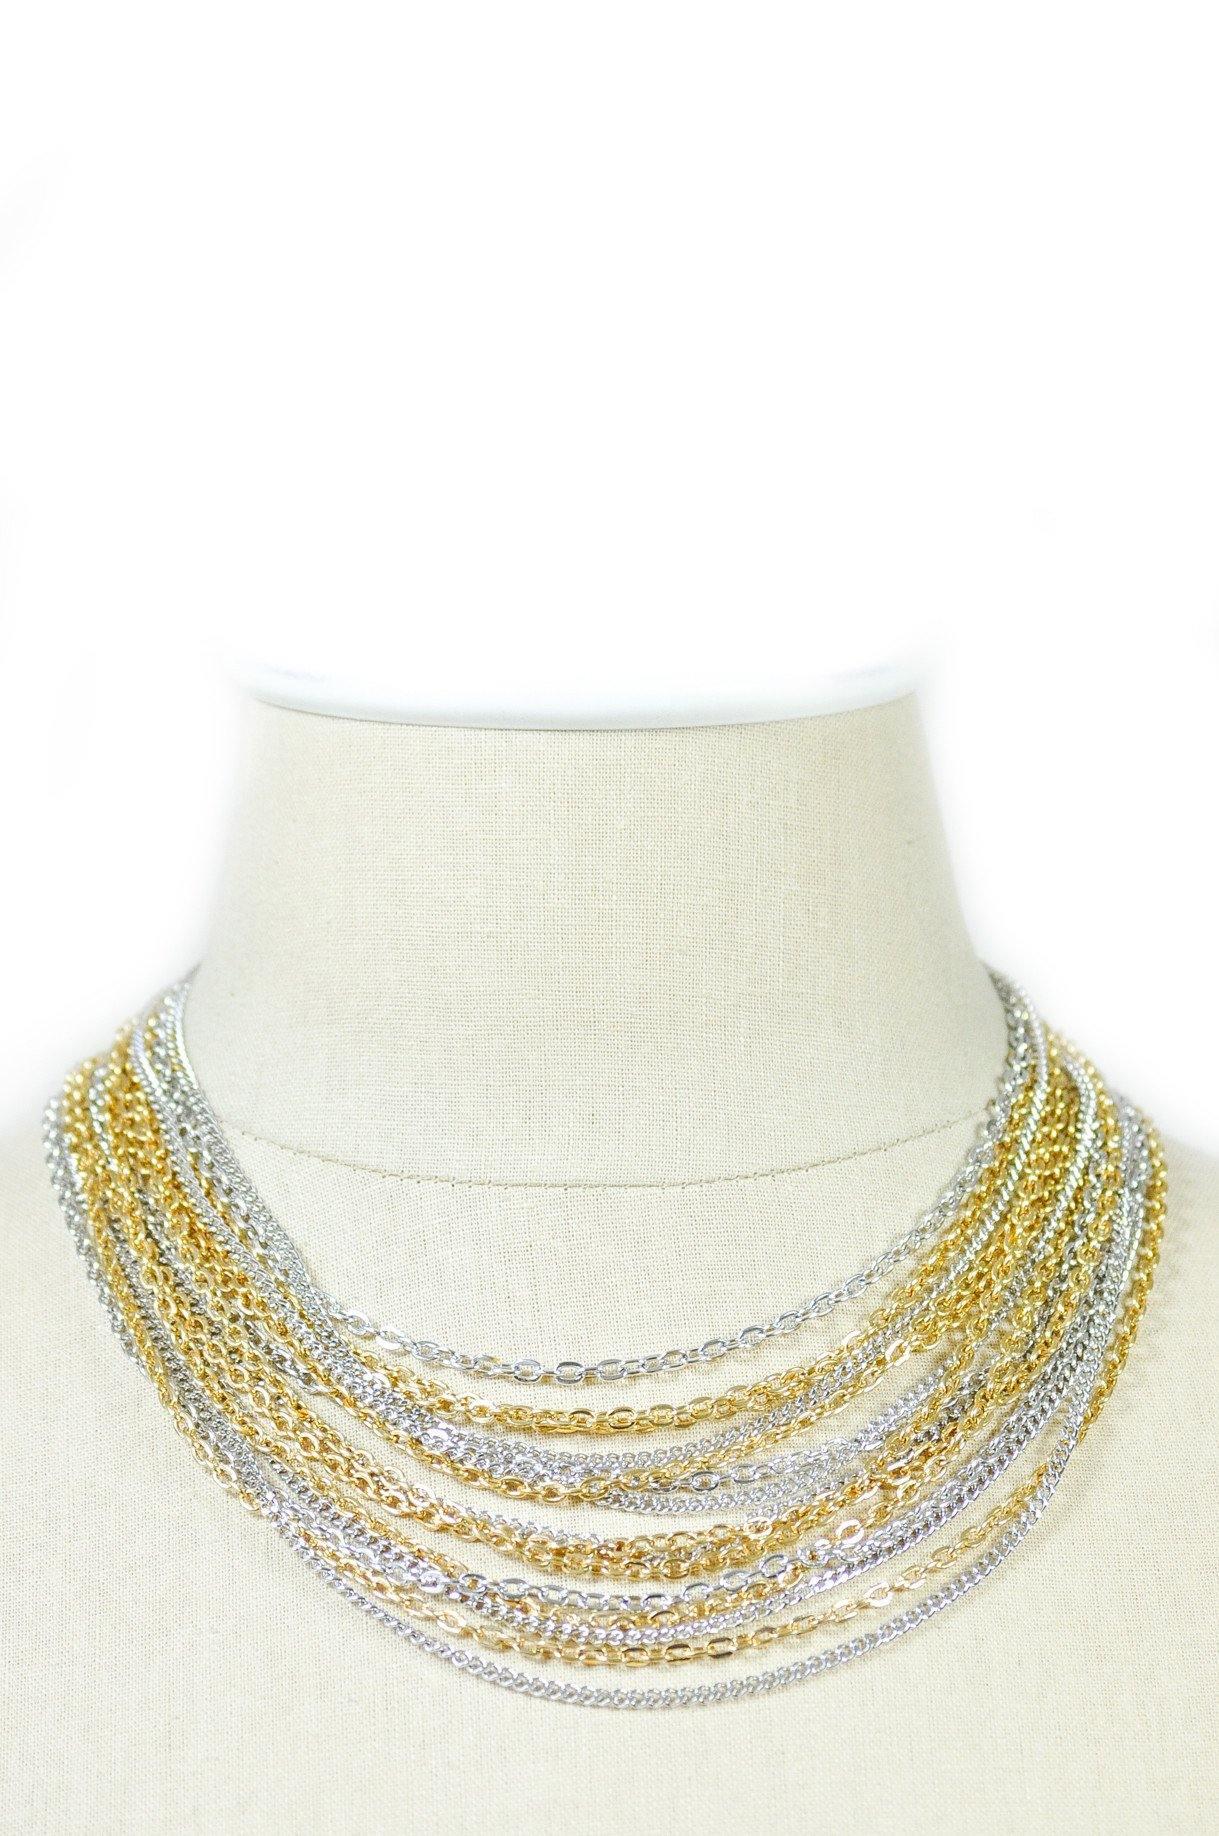 1950's Trifari Mixed Metals Multi Chain Necklace